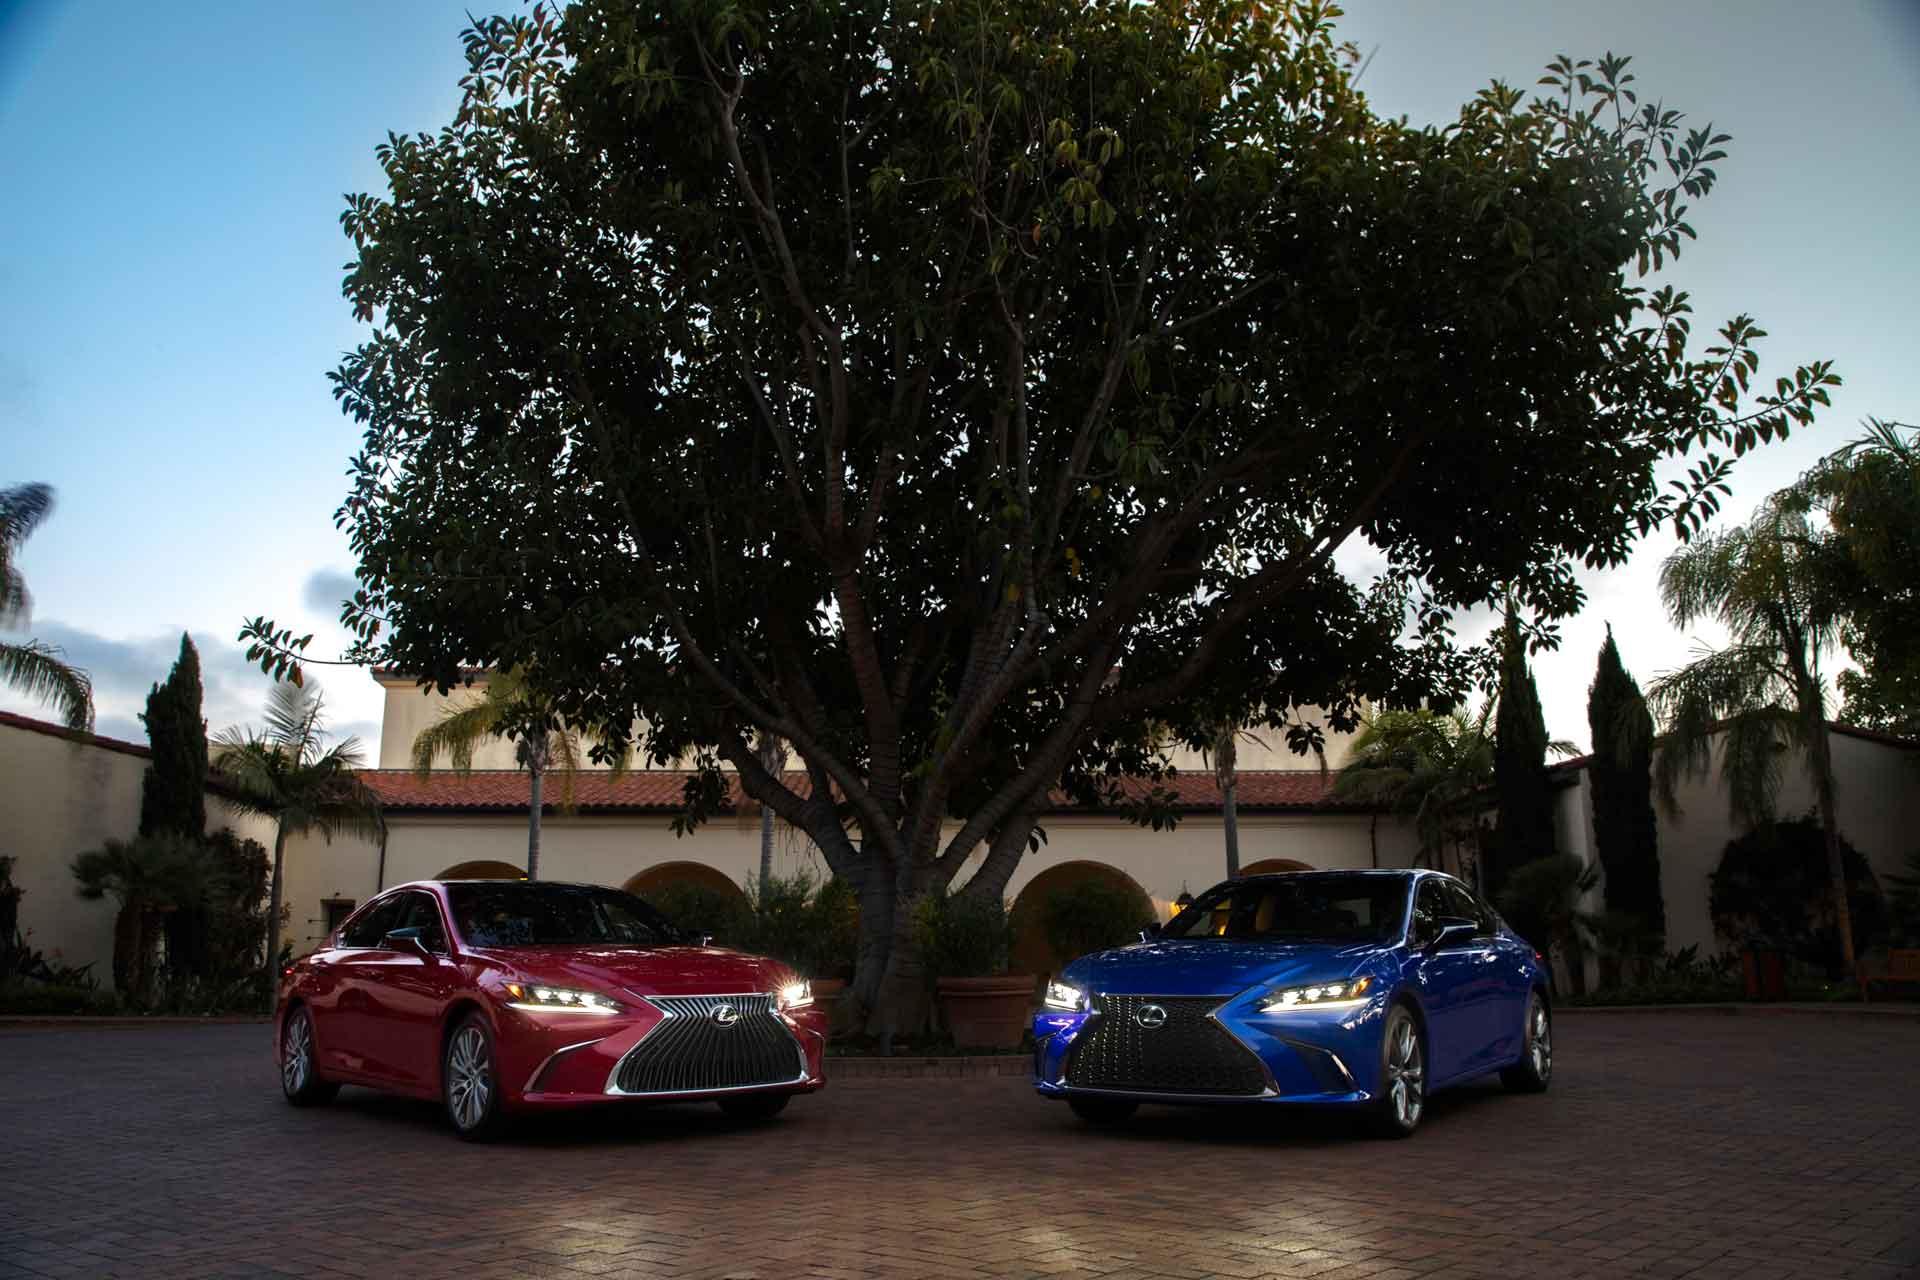 ES 350 Luxury Package in Matador Red Mica & ES 350 FSPORT in Ultrasonic Blue Mica 2.0